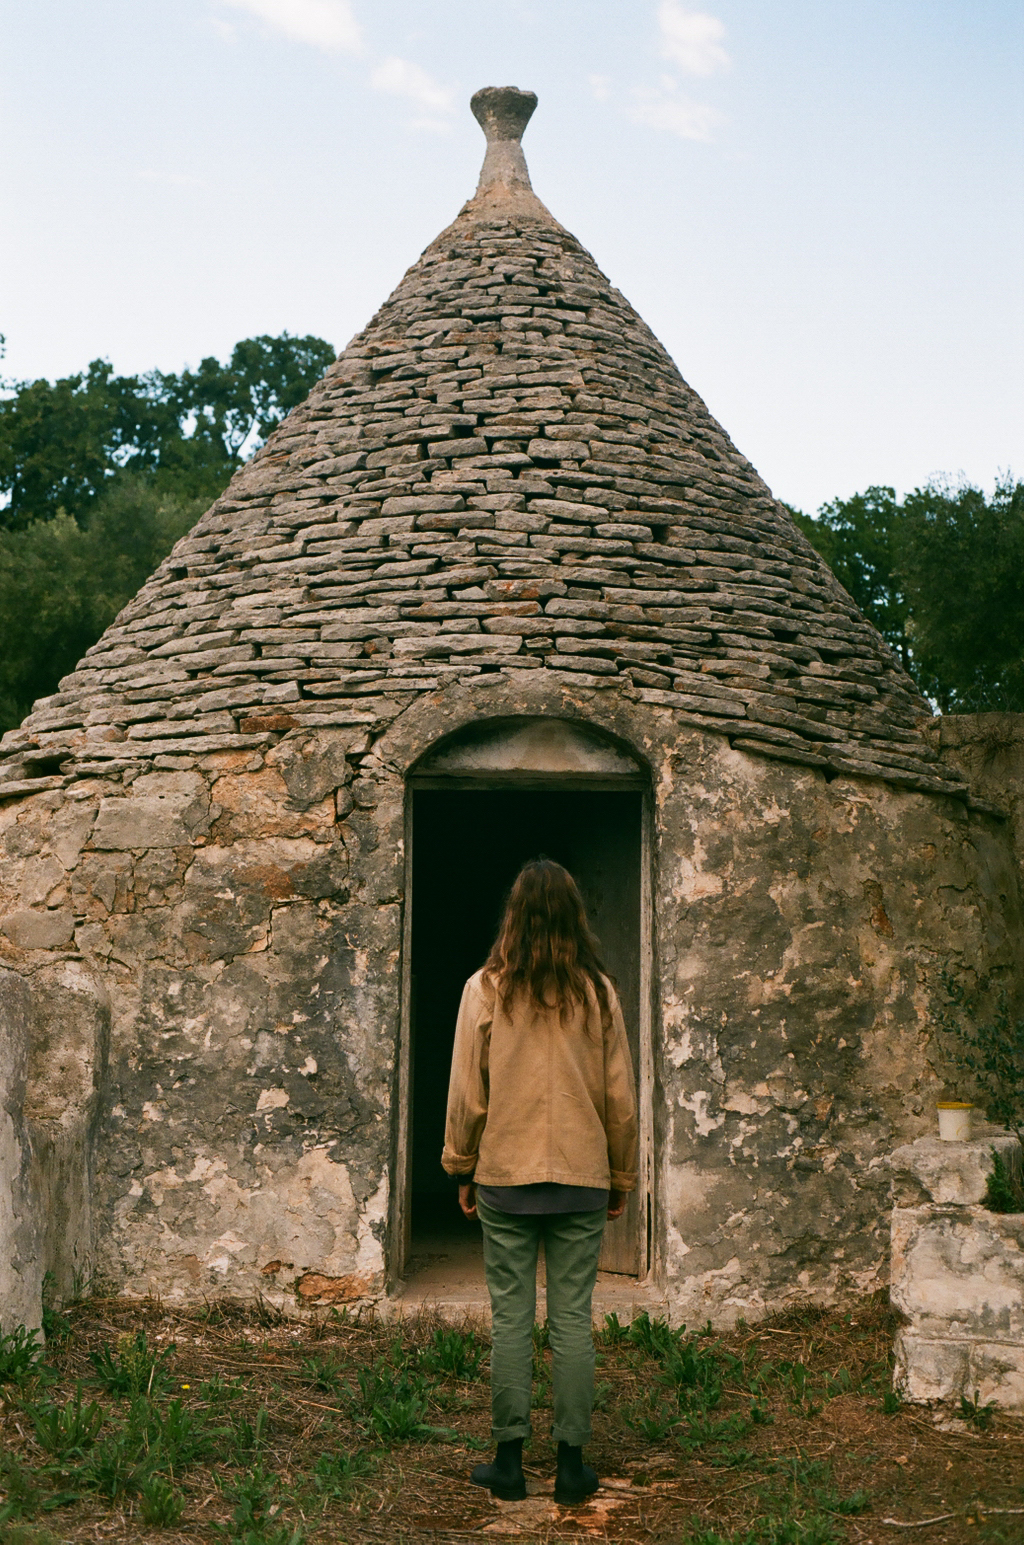 The Trulli: - A traditionaldry stonehutfeaturing a conical roof -Used as a temporary fieldshelter and as tiny abodesfor agricultural workers.